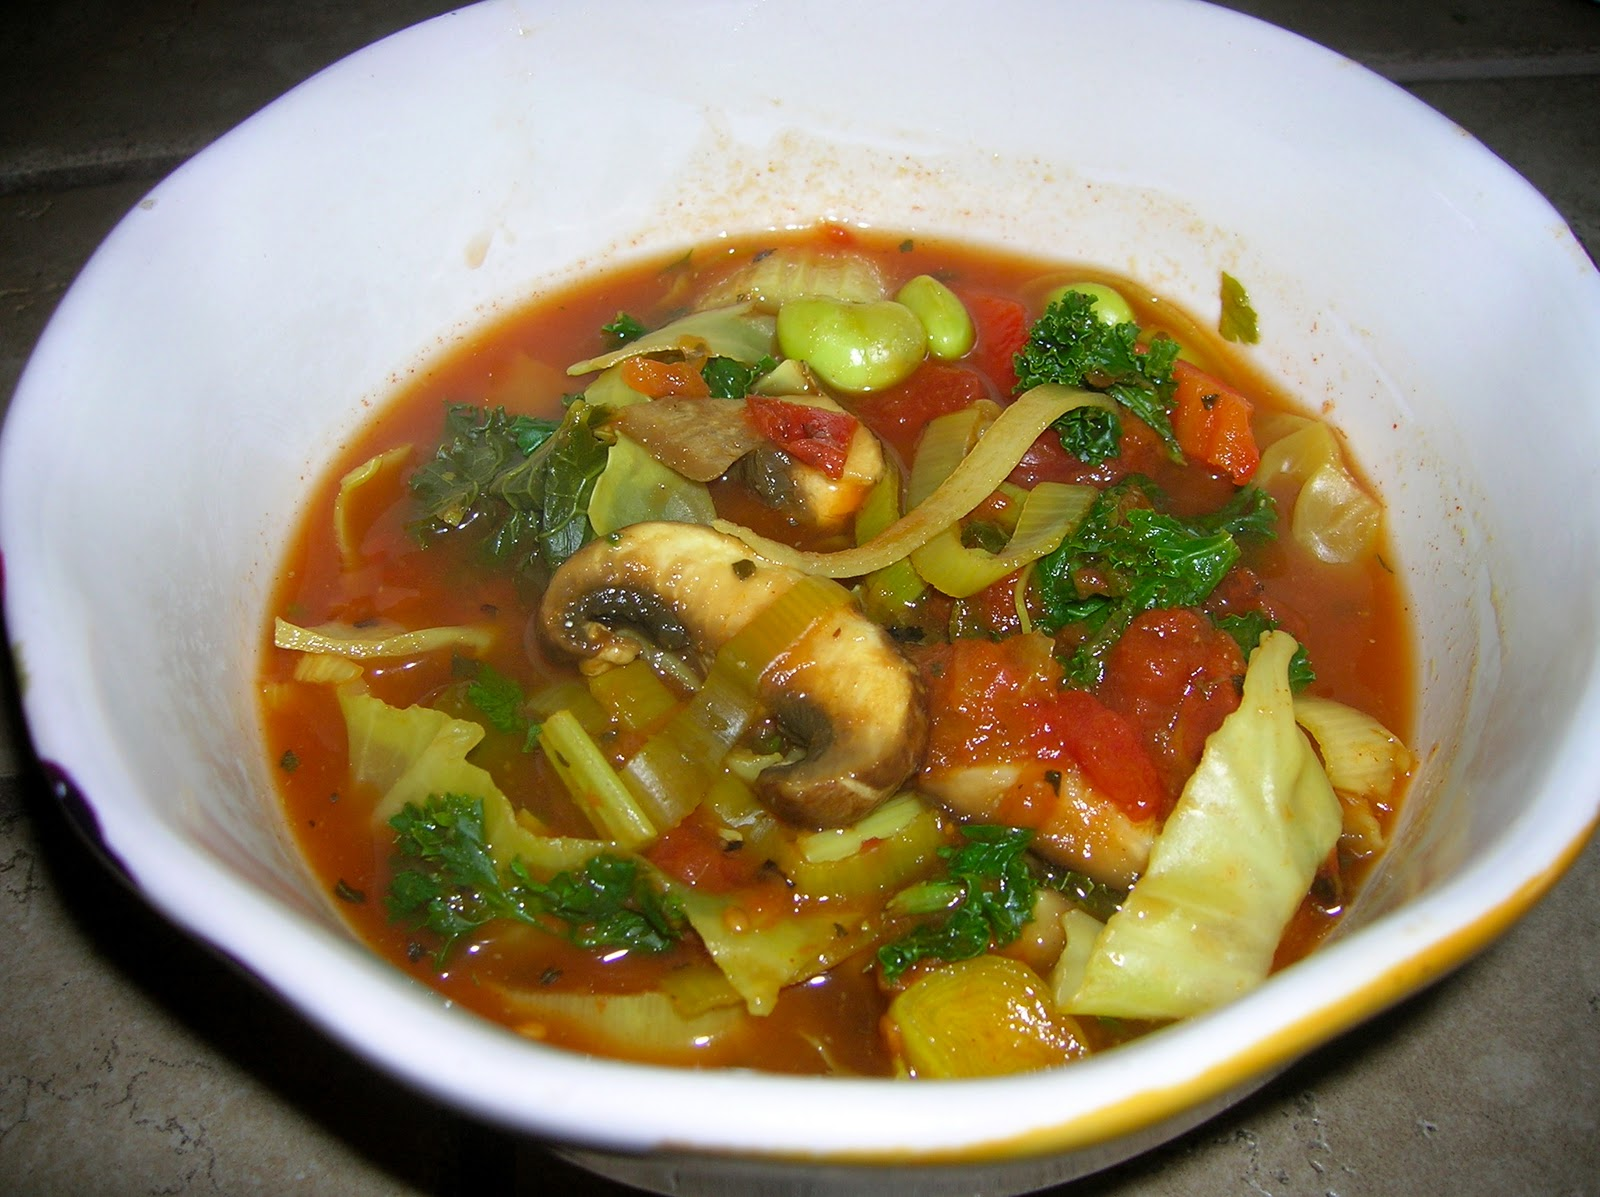 The Southern Herbivore: Organic Cancer-Fighting Vegetable Soup